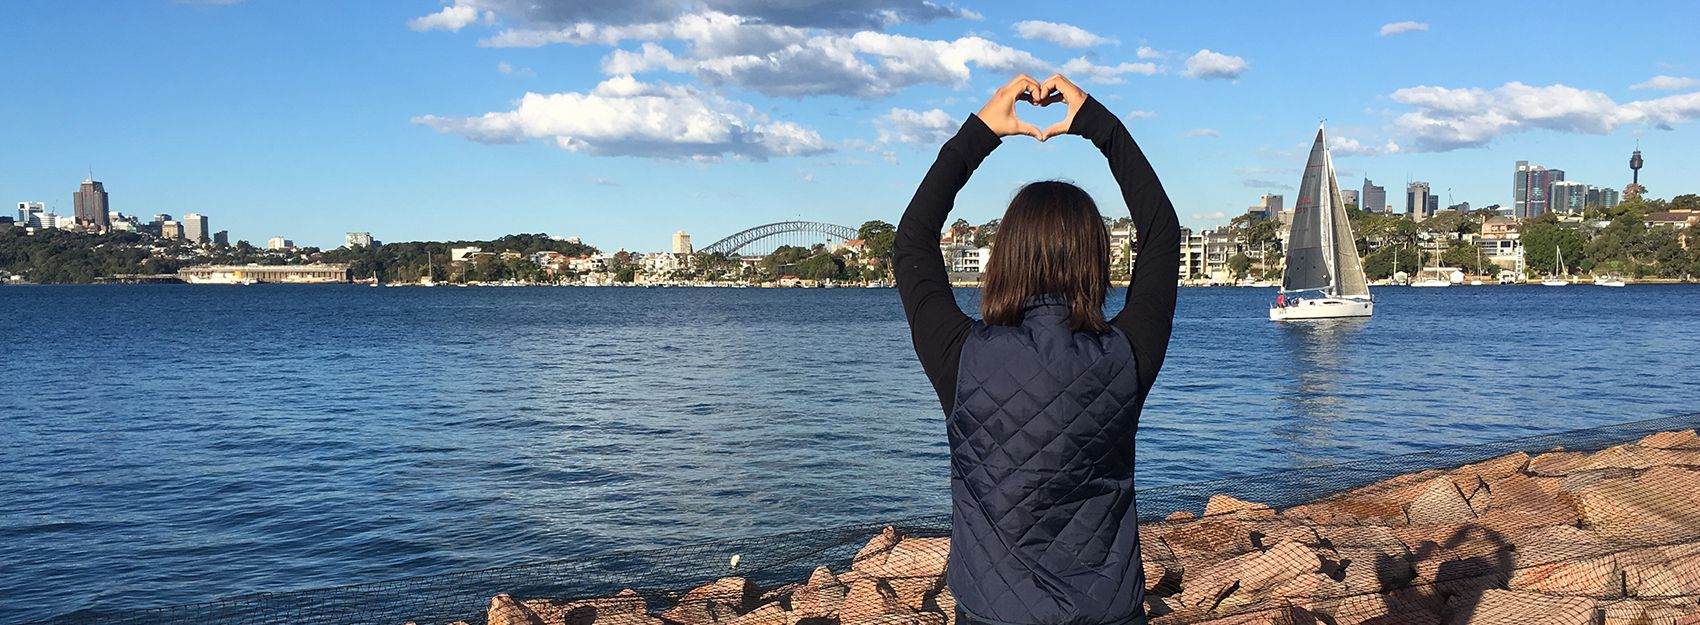 Sydney study abroad student by the Sydney Harbour